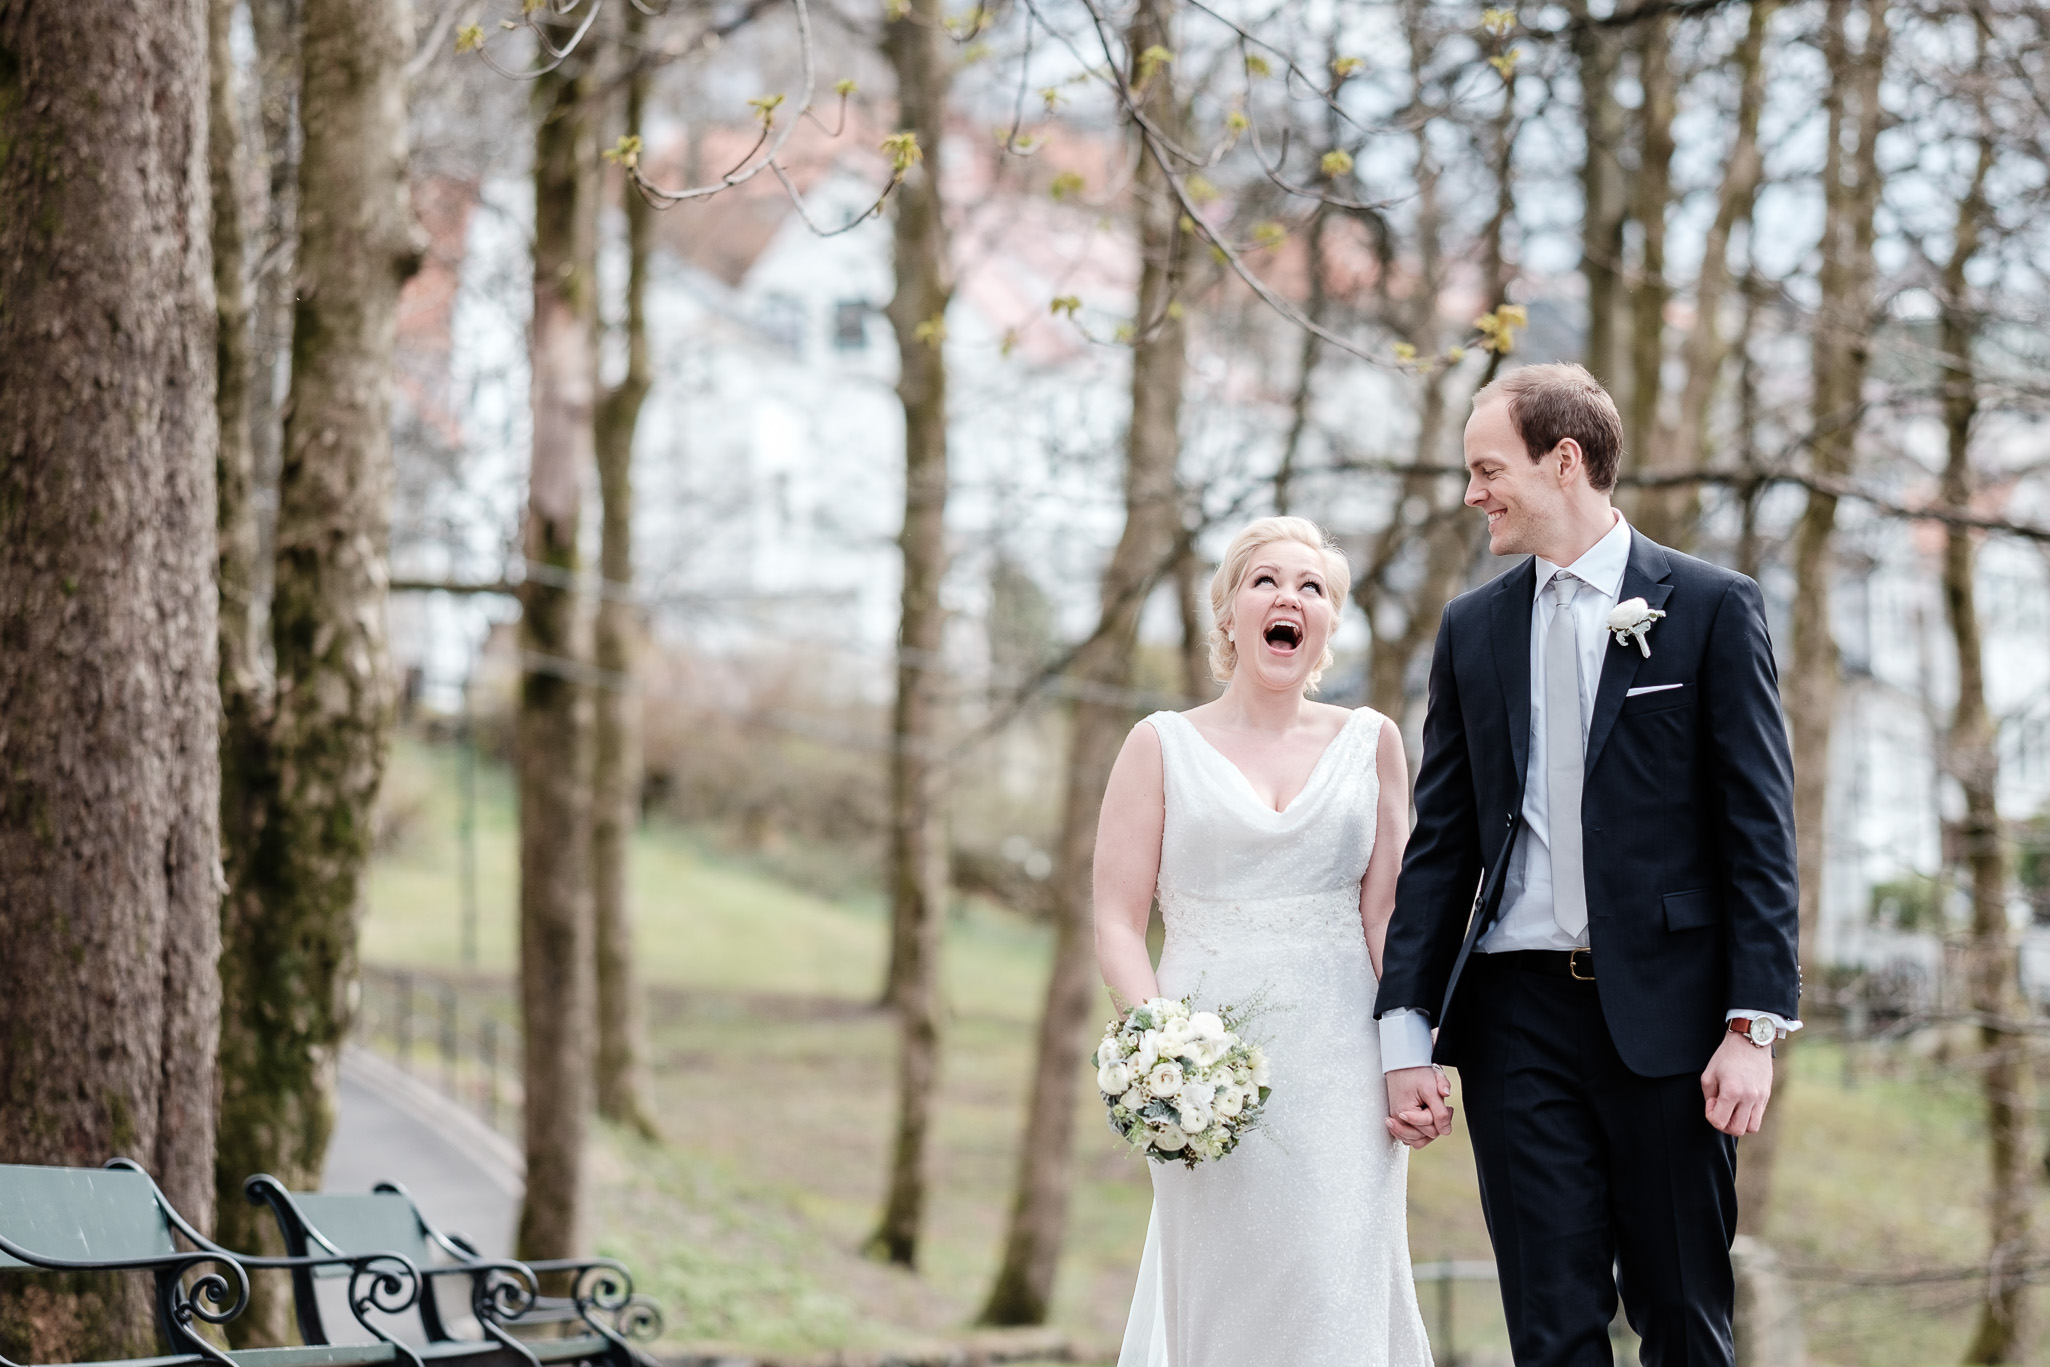 Click to enlarge image alida&jarle-bergen-ottossonphoto-4486.jpg